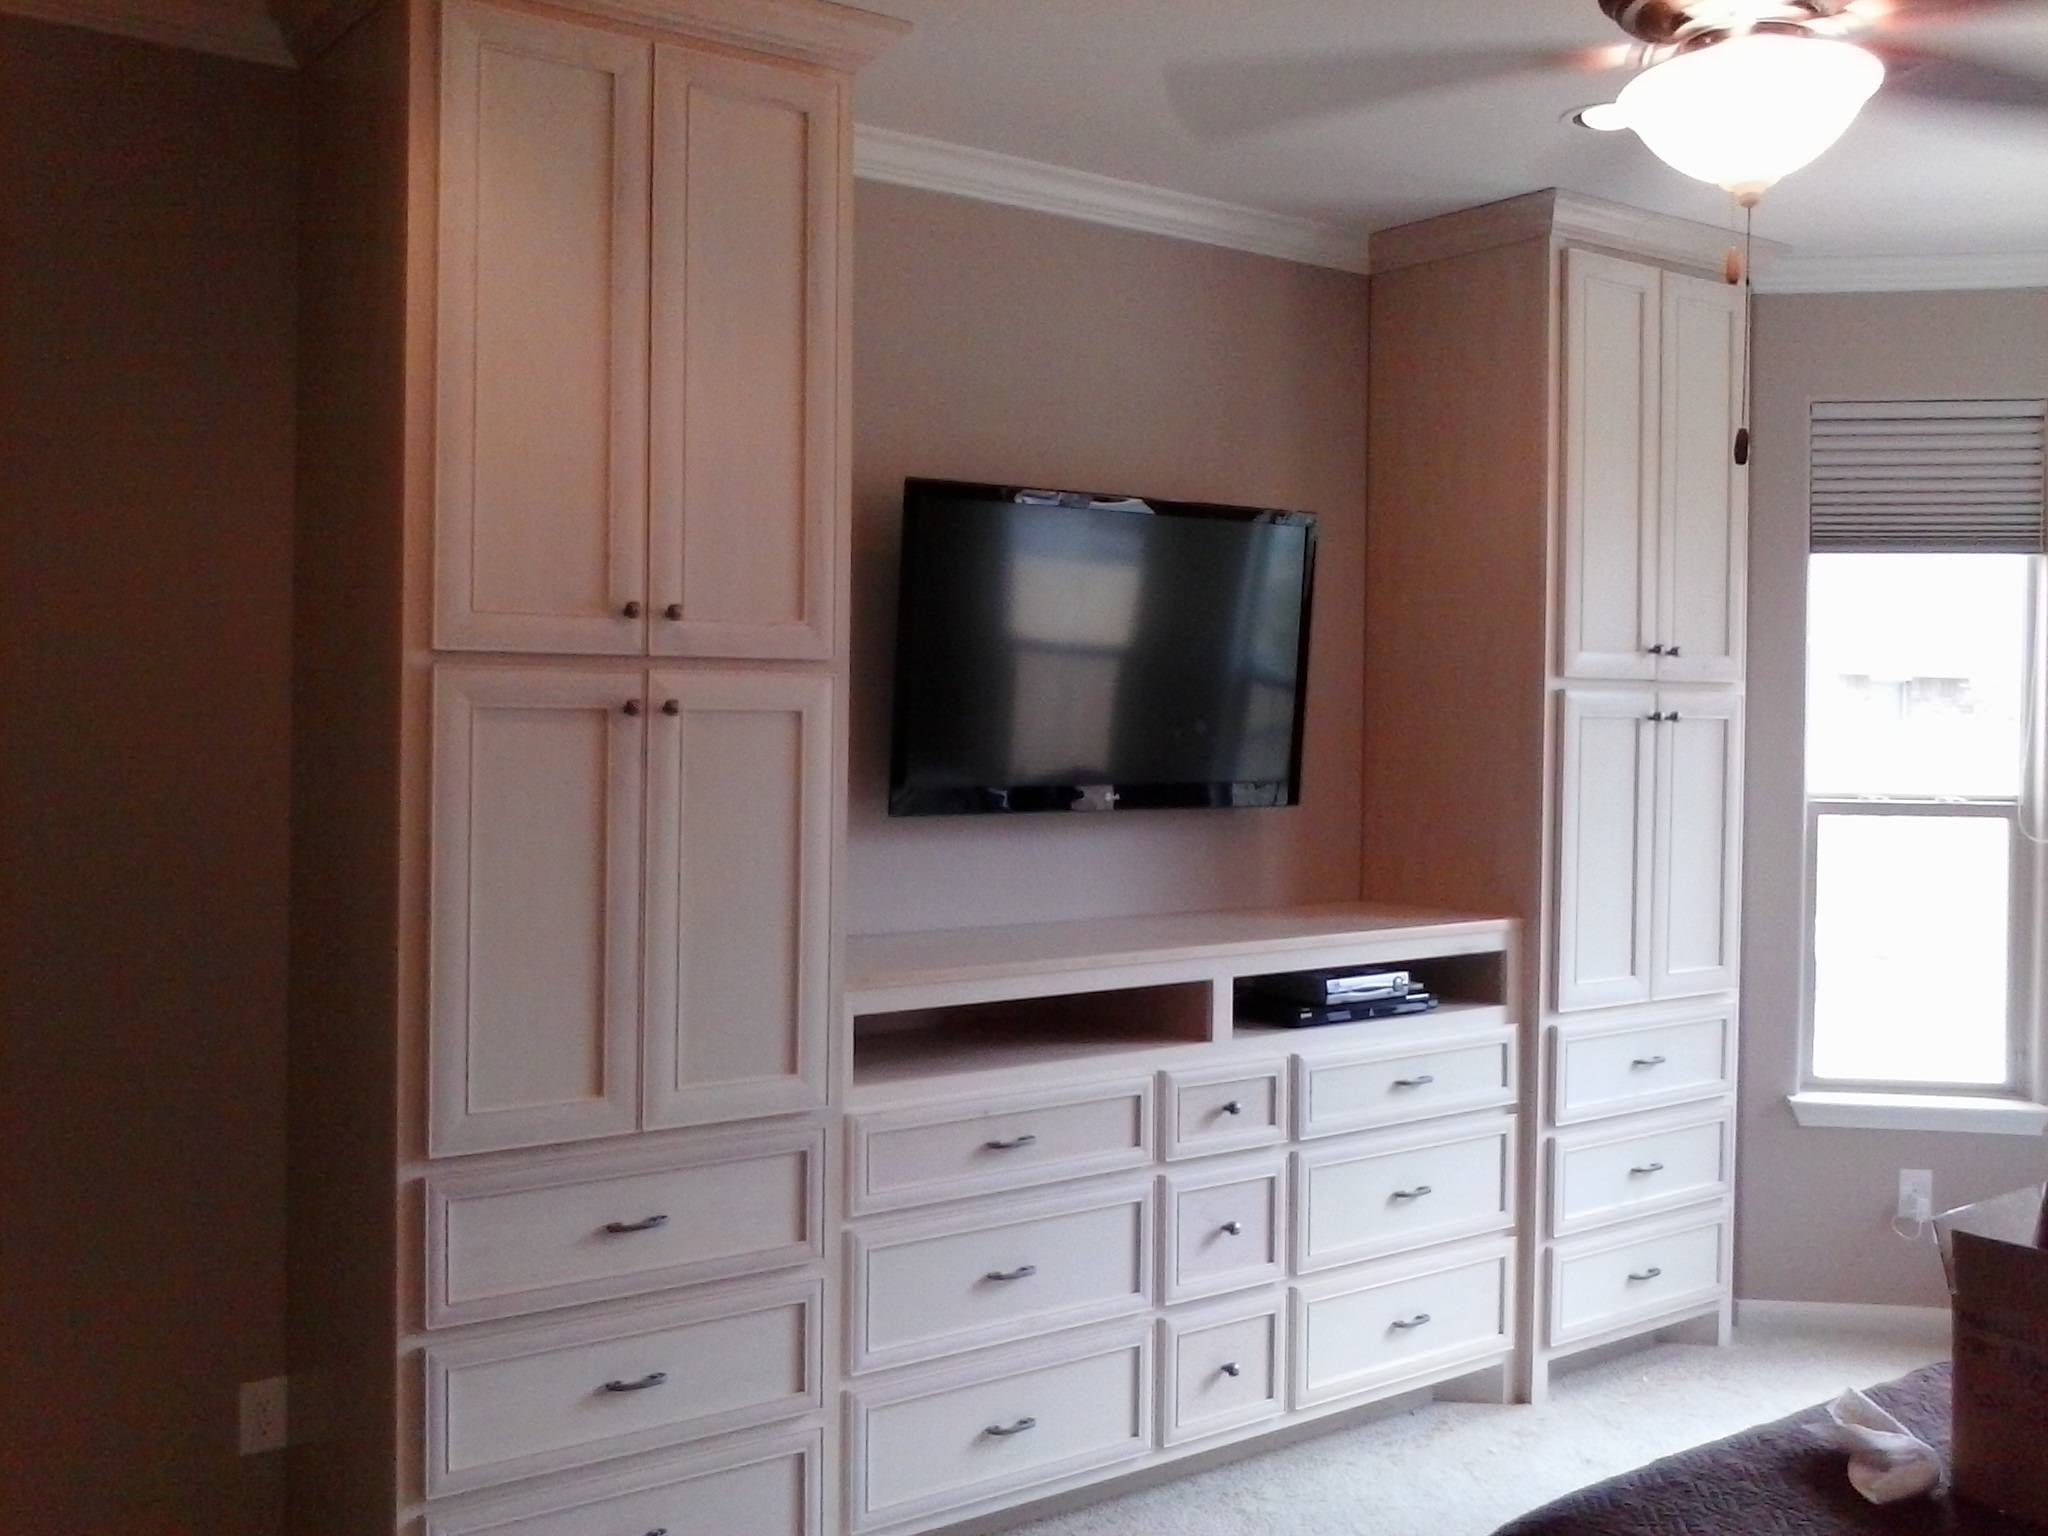 Wall Mounted Cabinets For Bedrooms | Shapeyourminds.com